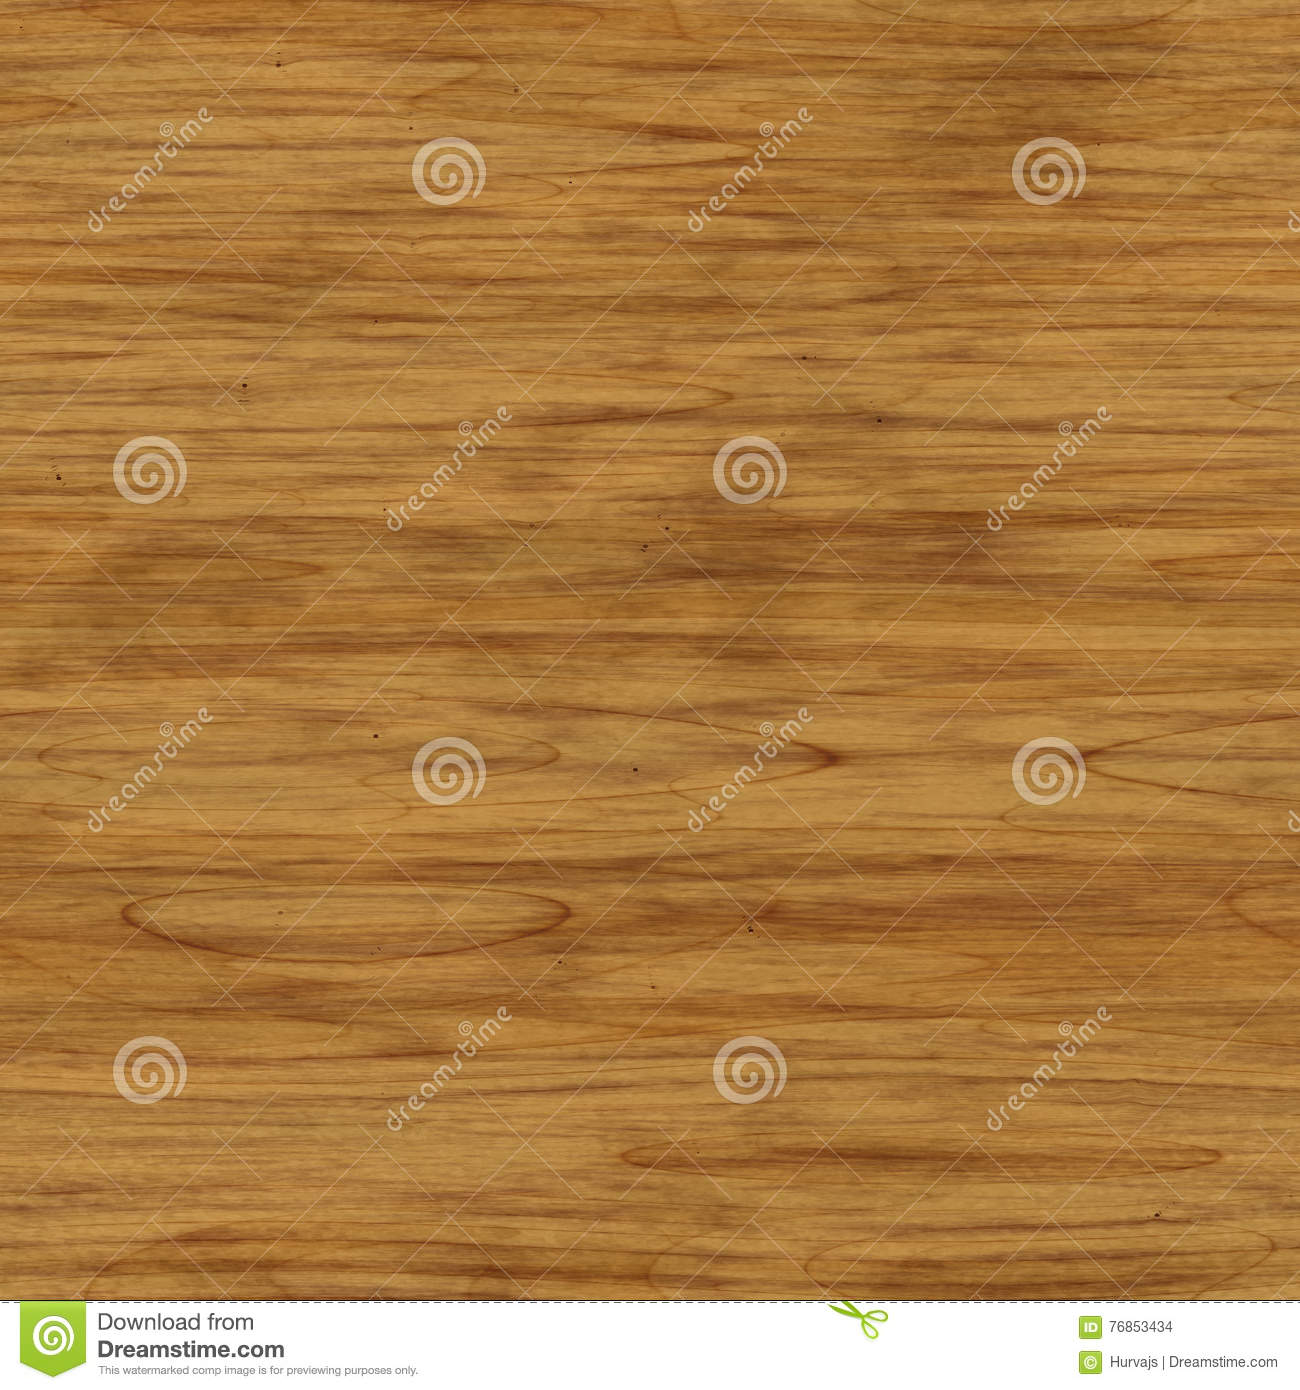 High Quality Hardwood Lumber ~ High quality resolution seamless wood texture stock